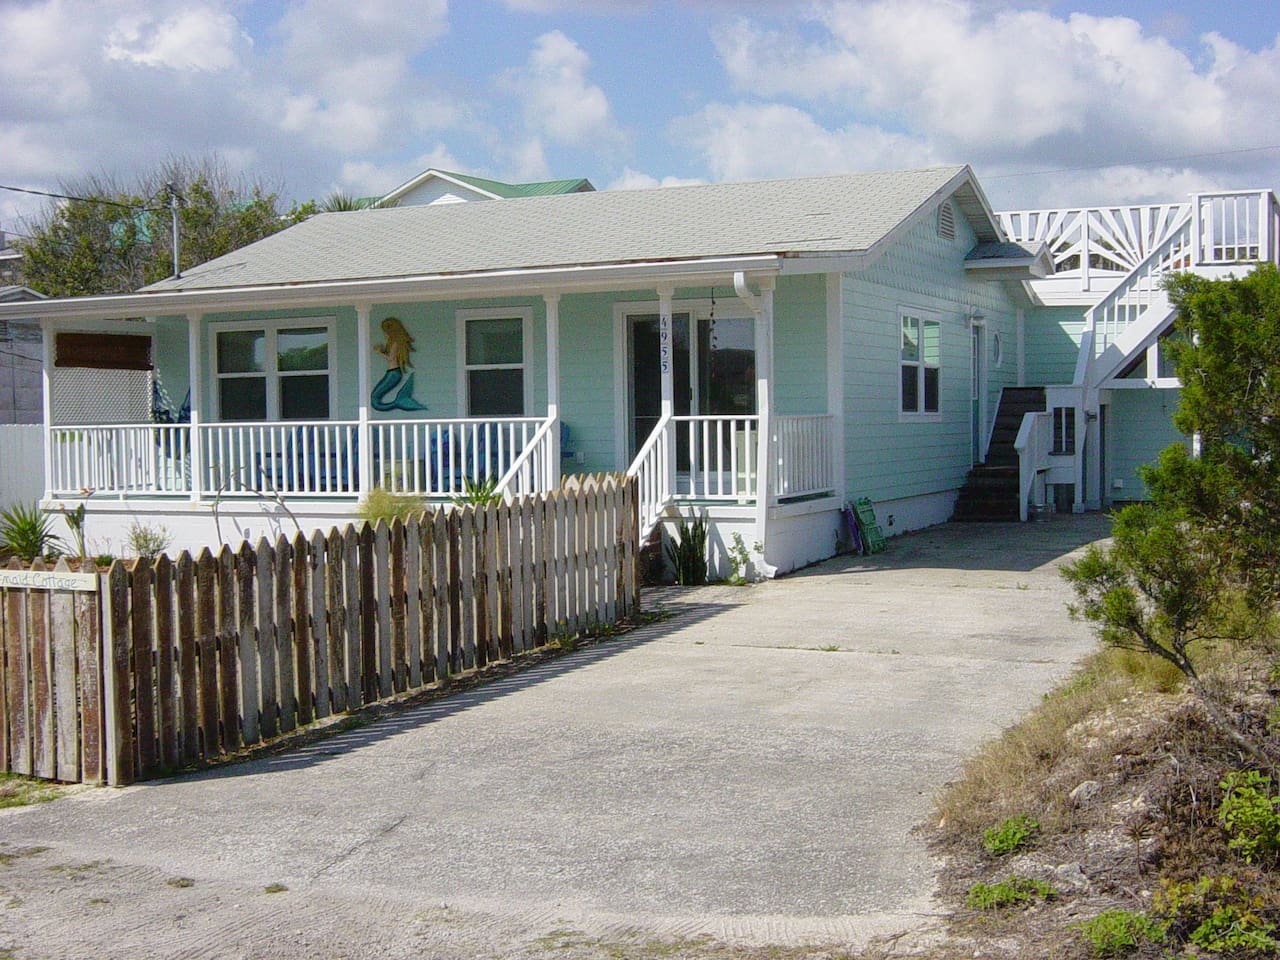 The quintessential beach cottage, fenced yard, free parking